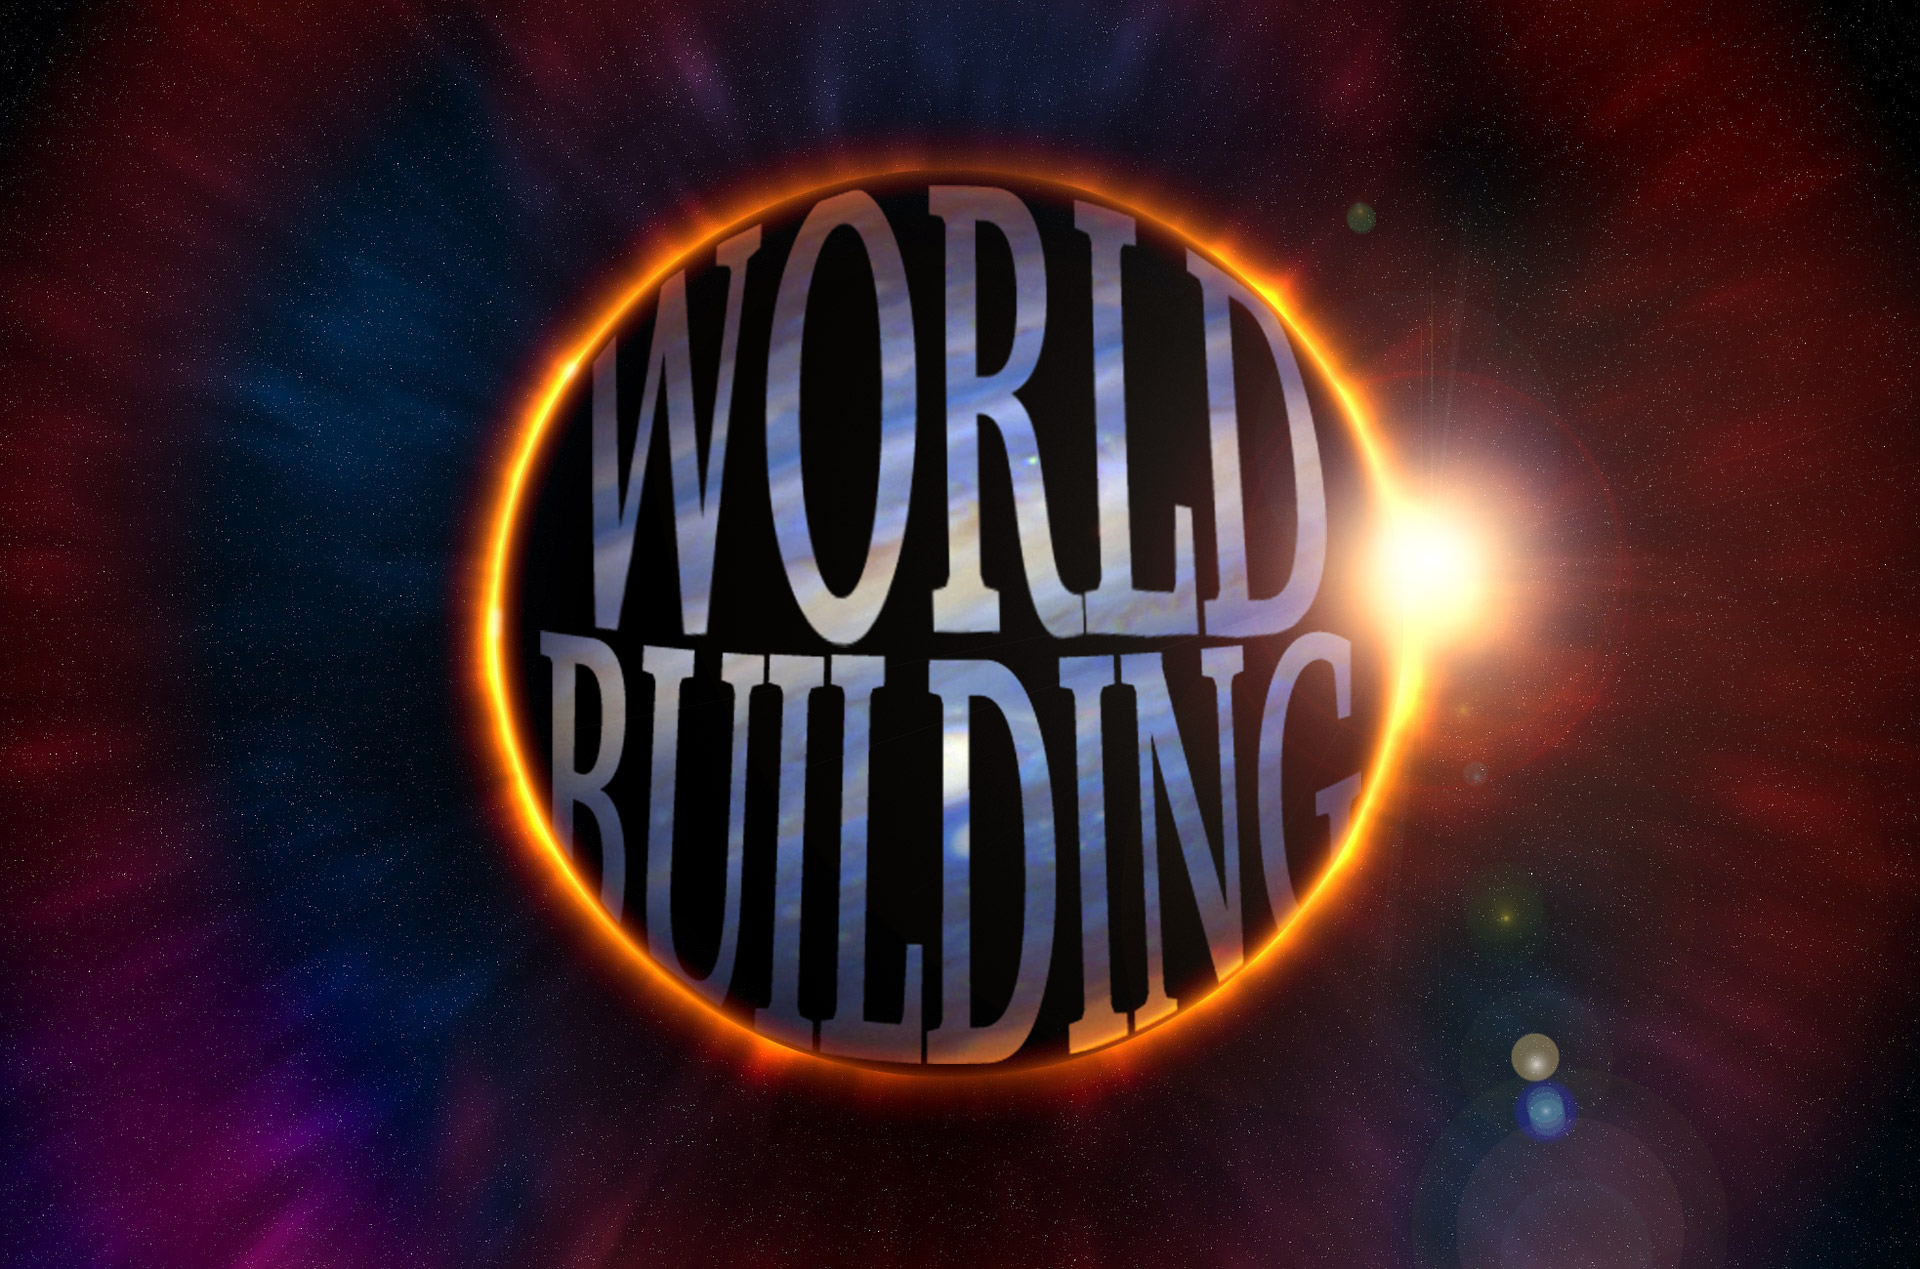 How hard could it be to build a whole world?